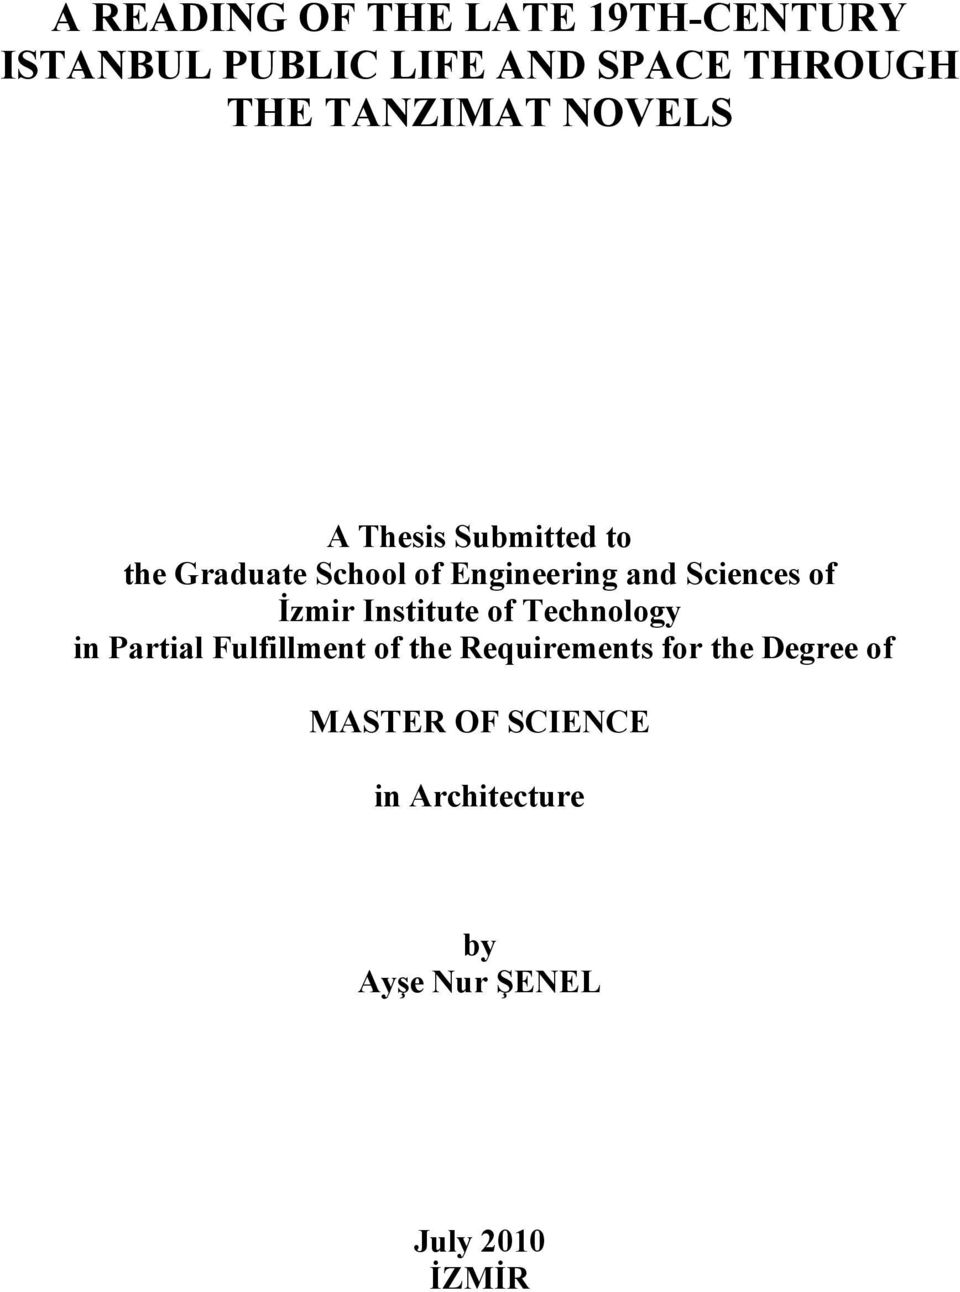 Sciences of İzmir Institute of Technology in Partial Fulfillment of the